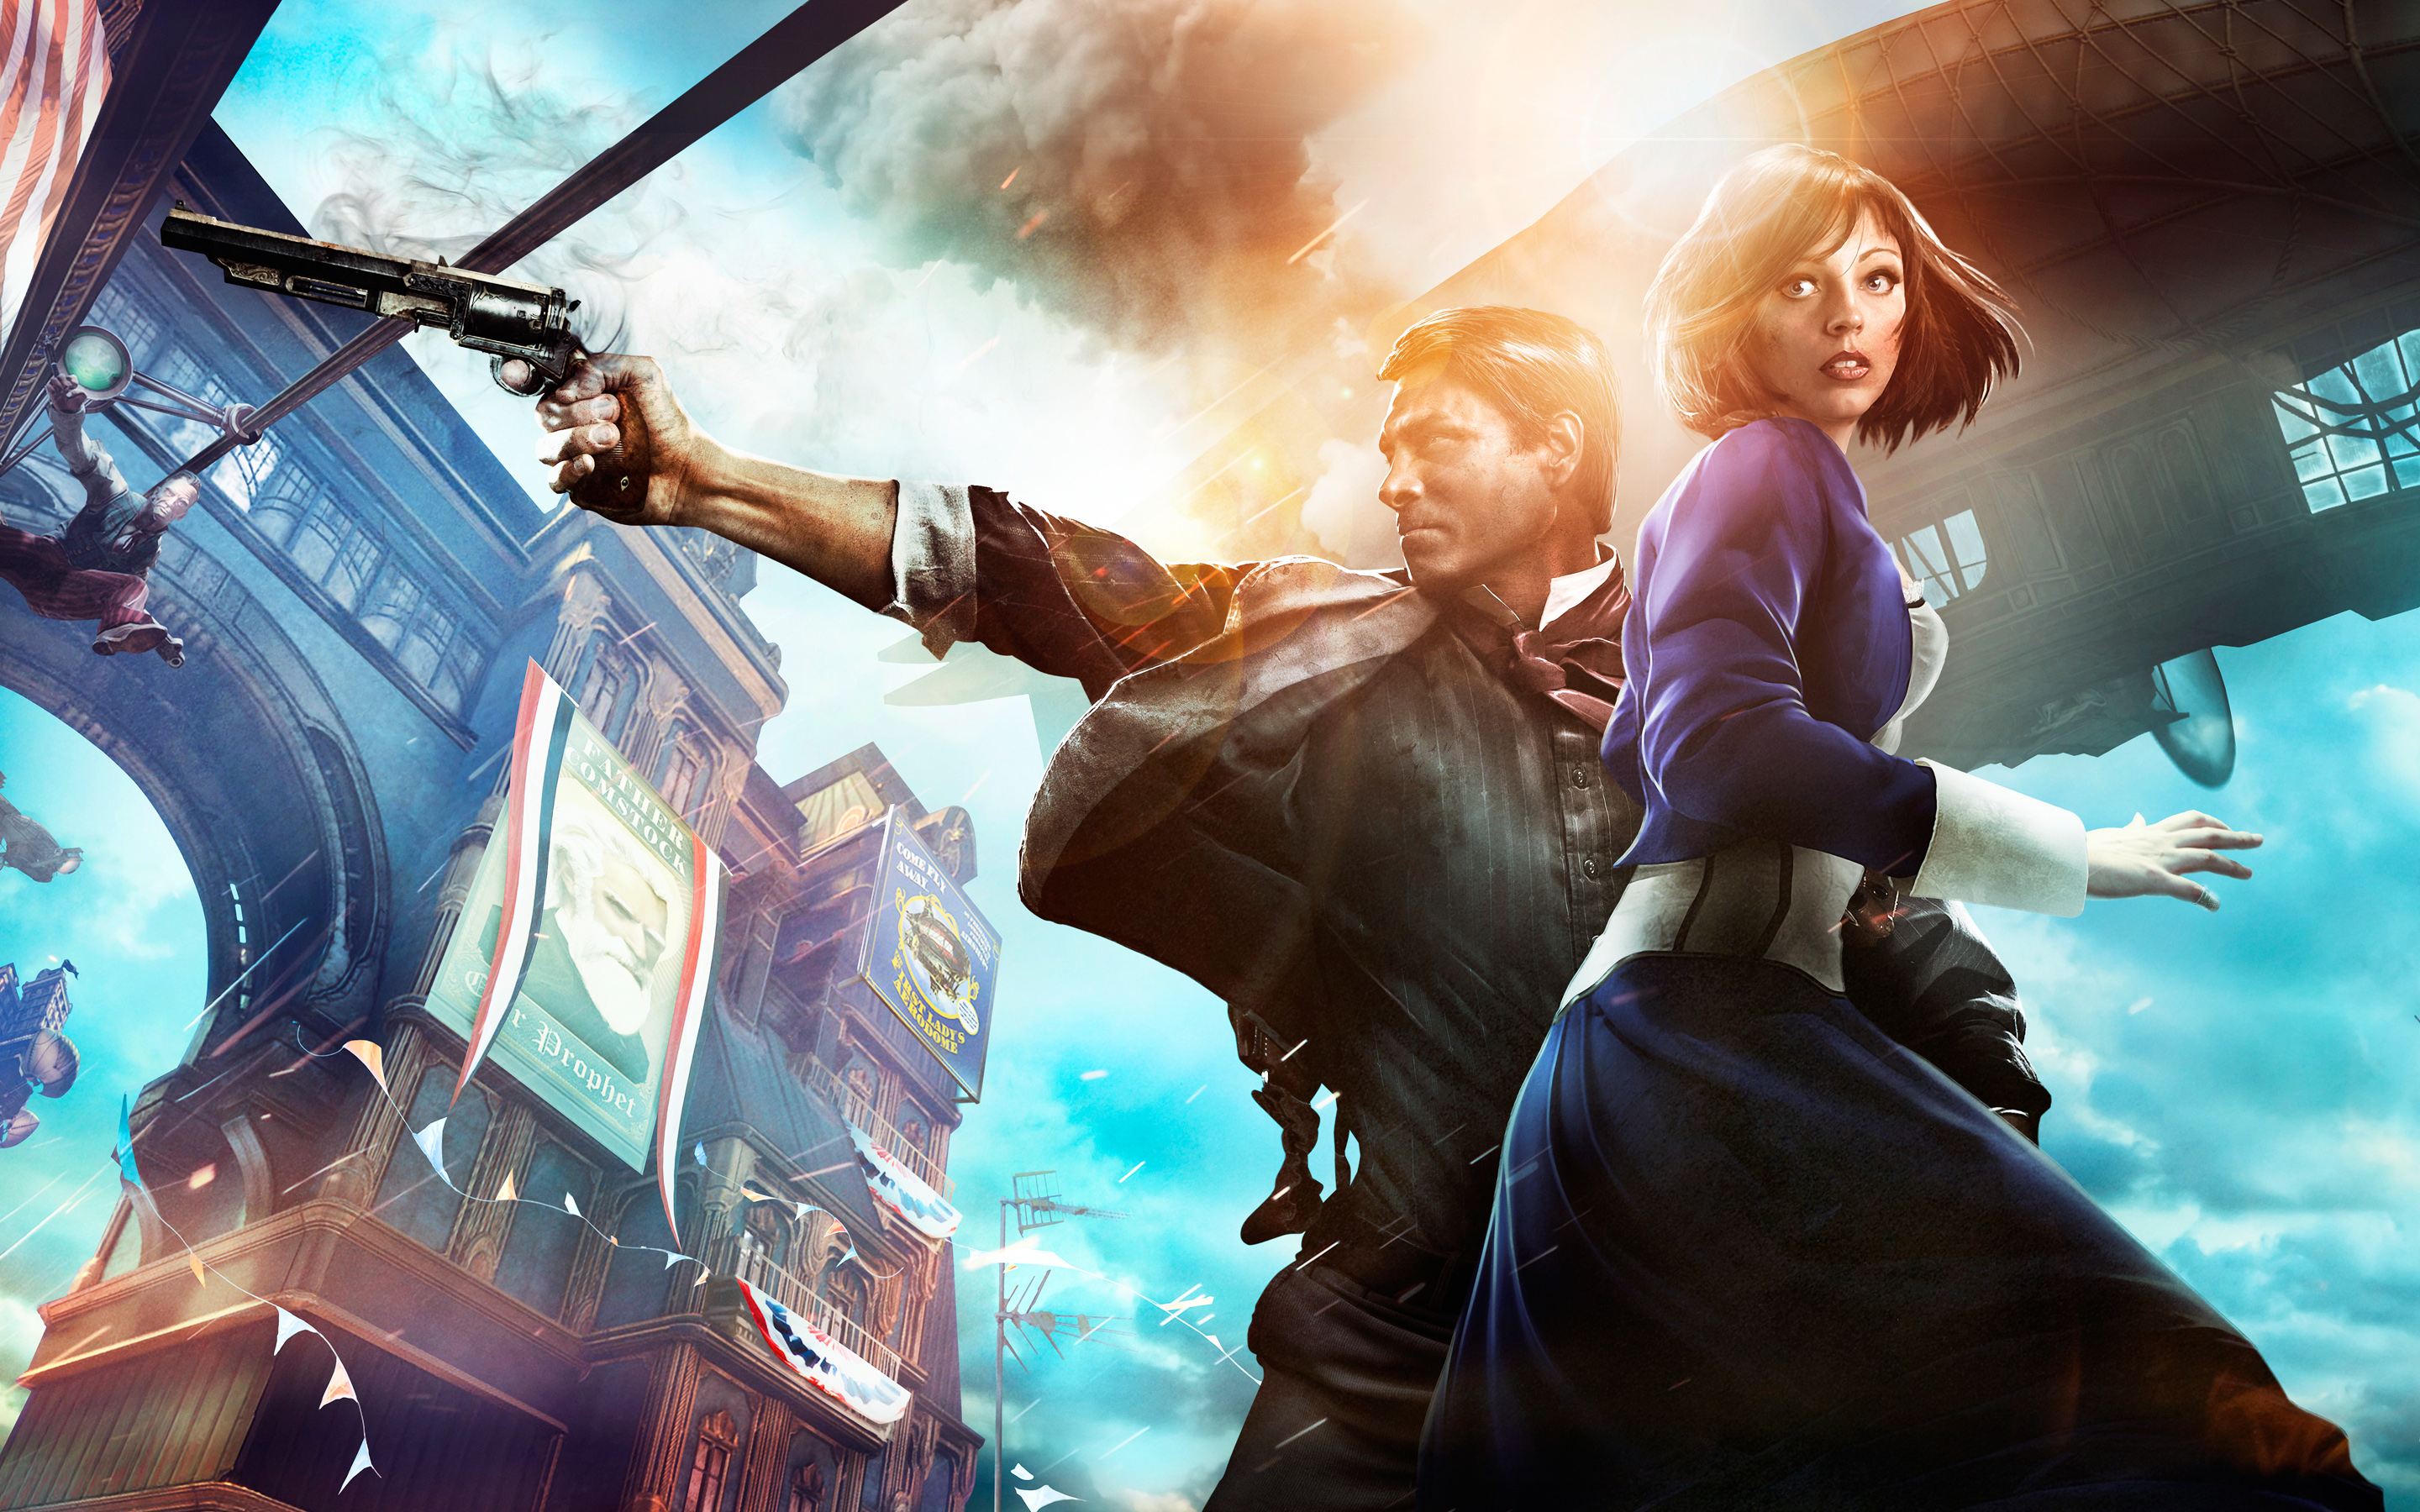 BioShock Infinite Game wallpaper